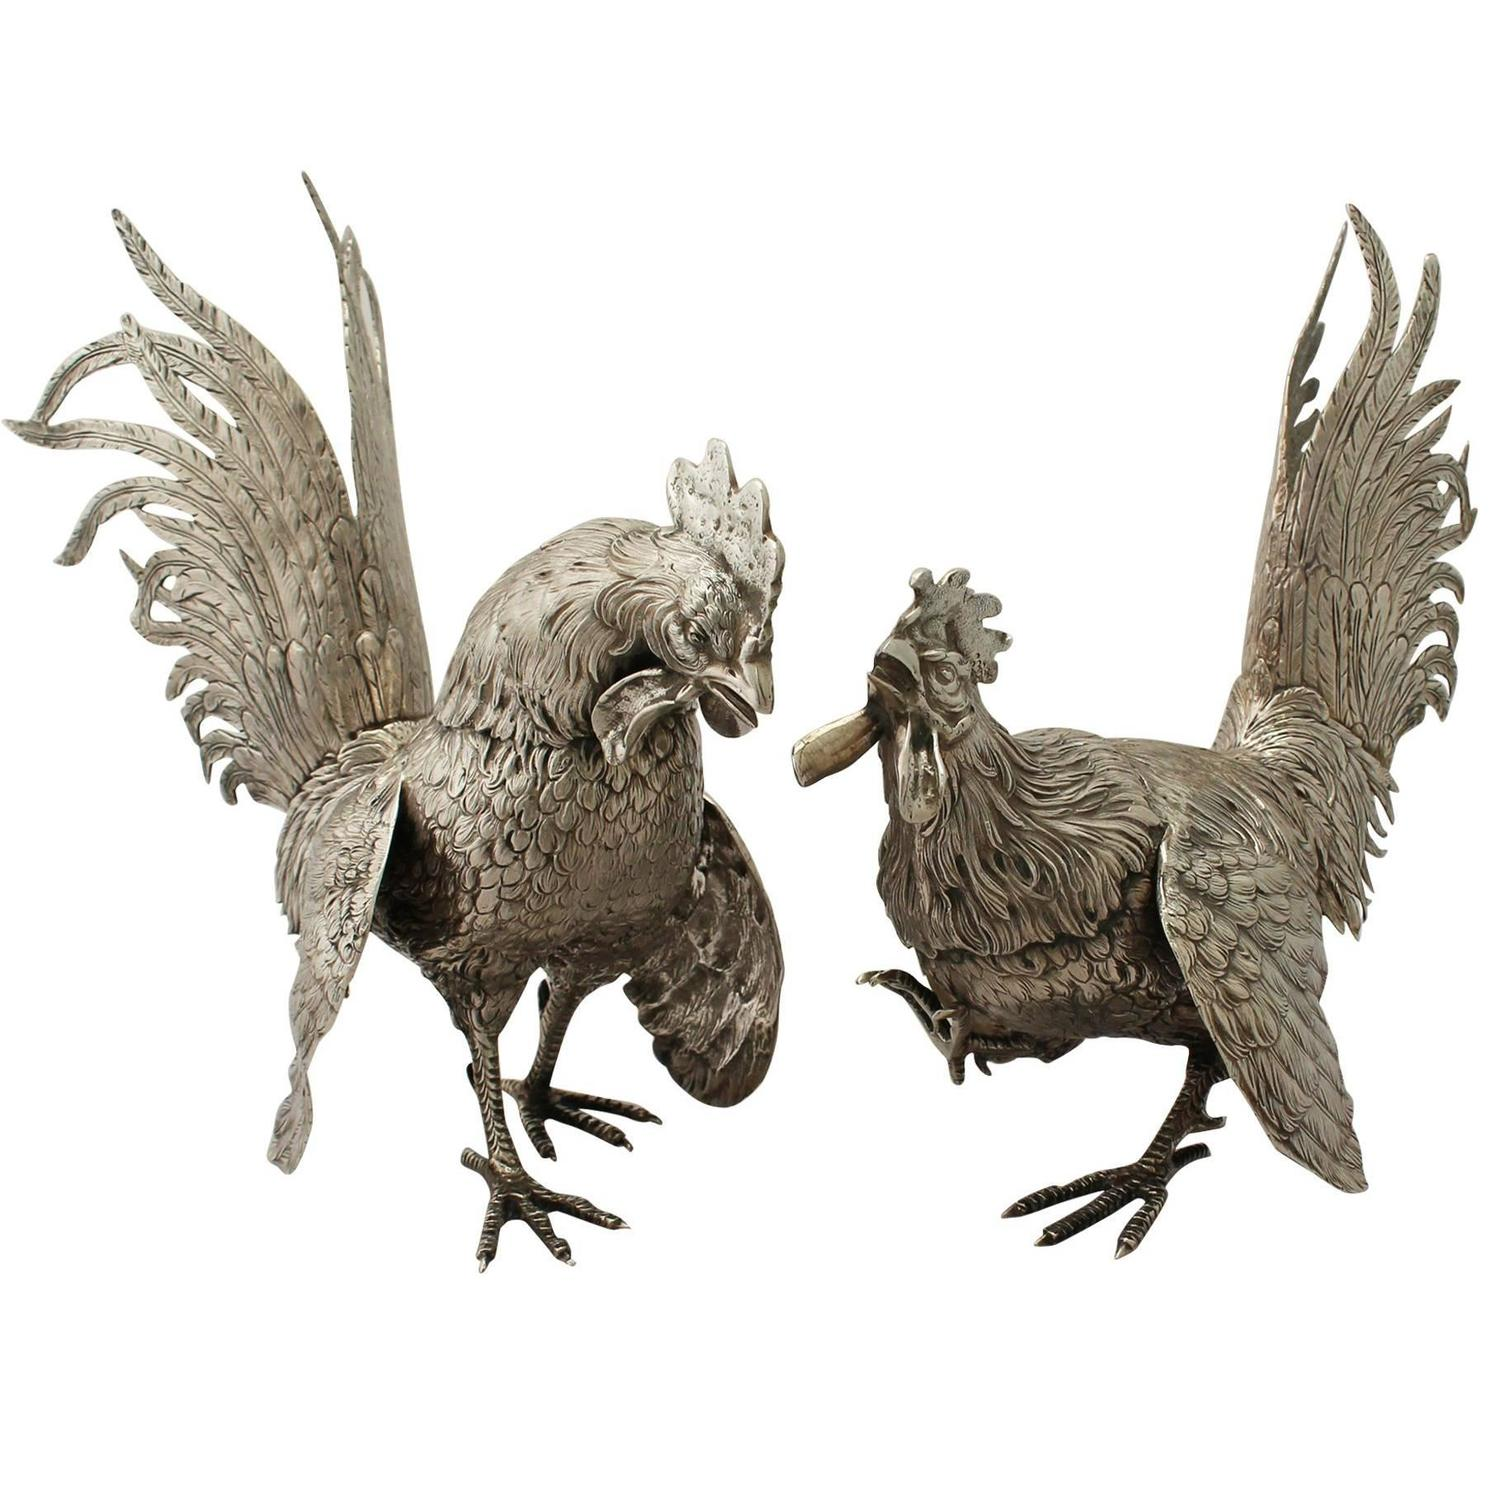 antique german silver fighting cockerel ornaments for sale at 1stdibs